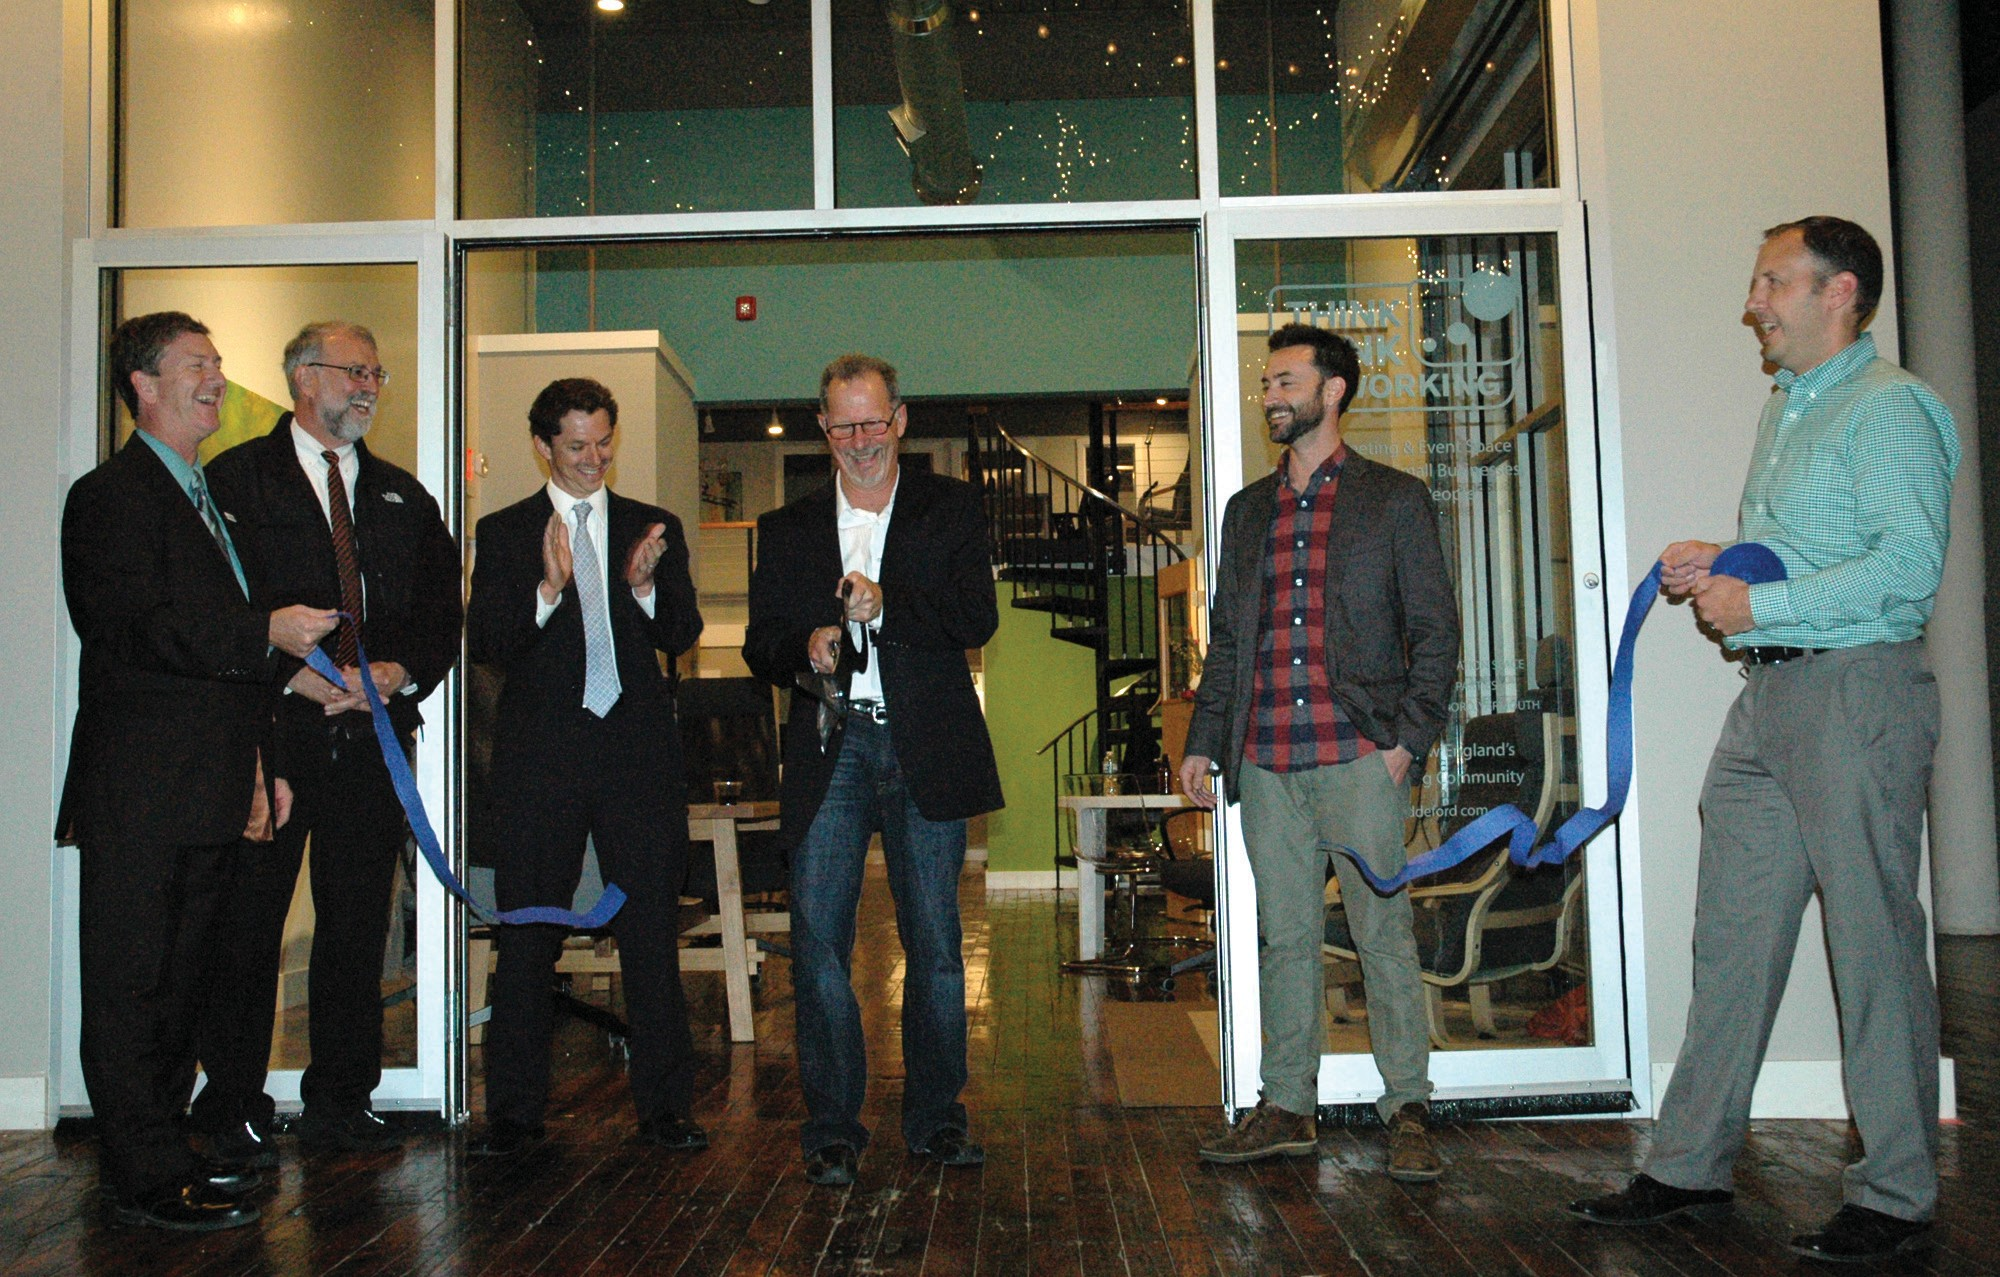 Above: Local officials are seen at a ribbon cutting at Think Tank Coworking's grand opening in Biddeford Thursday evening. From left: Biddeford + Saco Chamber of Commerce + Industry Executive Director Craig Pendleton, Biddeford Mayor Alan Casavant, State Senator Justin Alfond, Marc Feldman, director of Think Tank Biddeford, Think Tank Founder Patrick Roche and Biddeford + Saco Chamber of Commerce + Industry Business Development coordinator James Jasper. Below: People mix, mingle and tour the new Think Tank Coworking space in Biddeford Thursday evening.